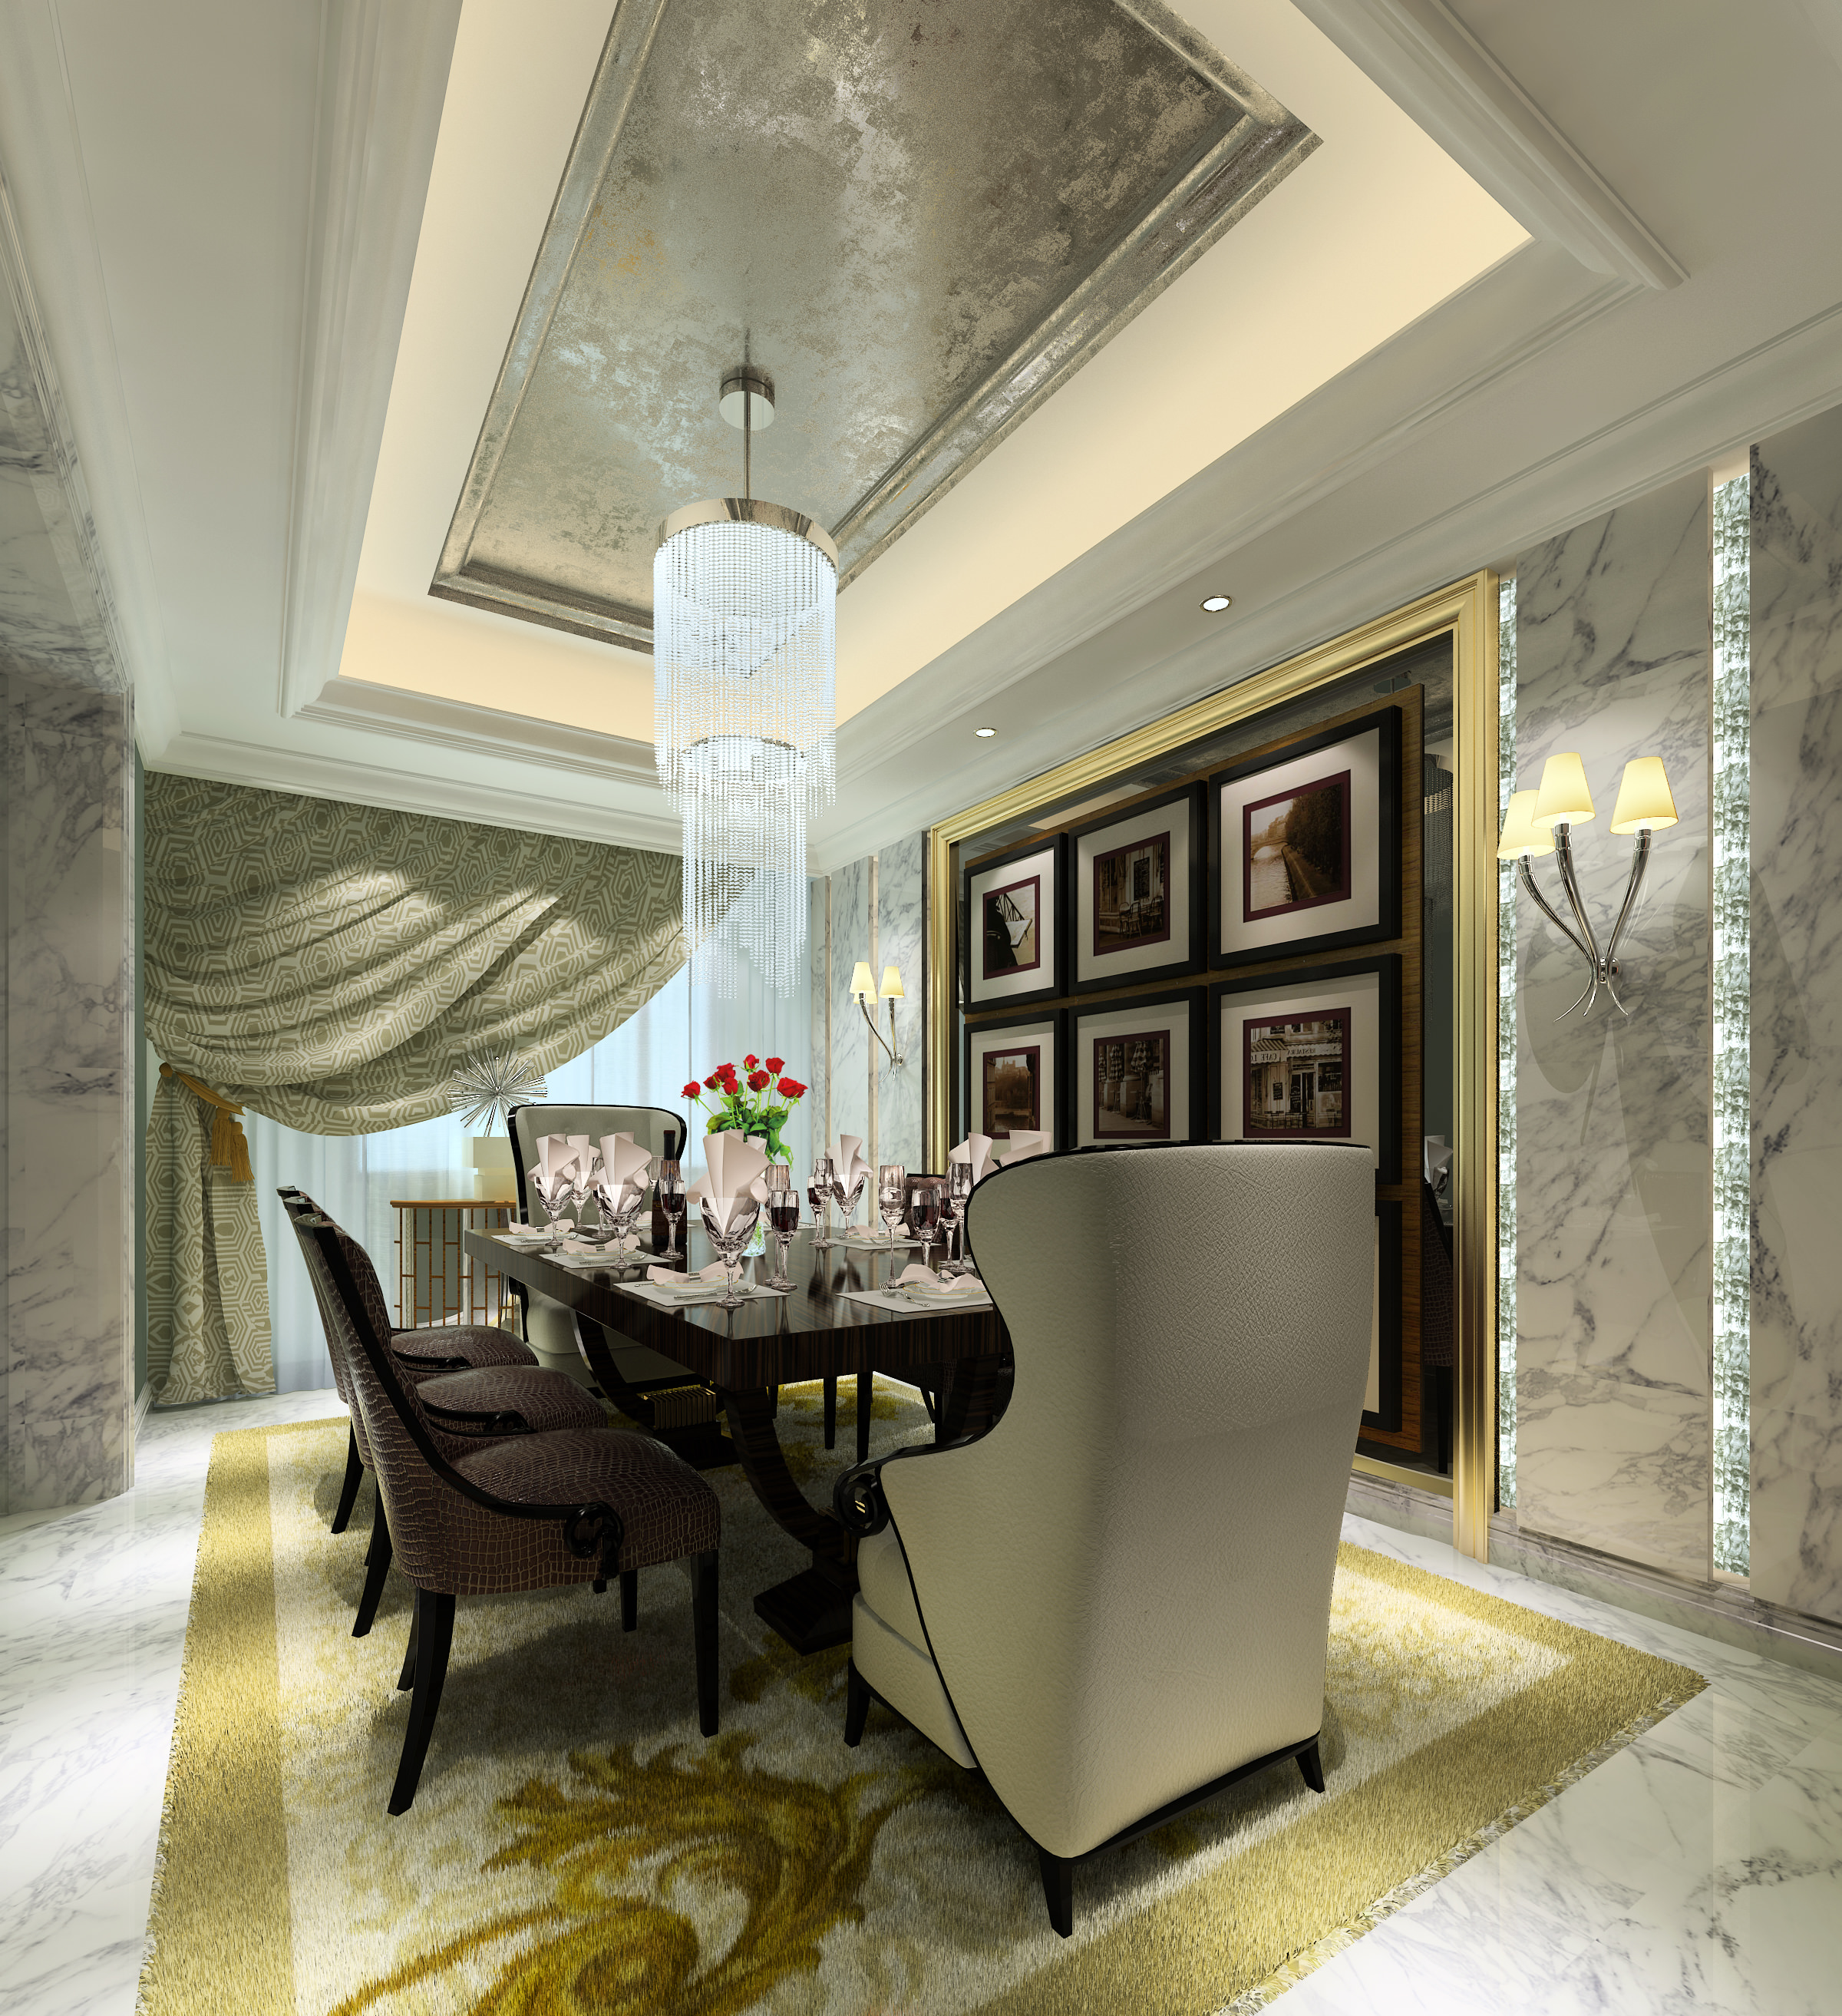 Luxury dining room 3D Model .max - CGTrader.